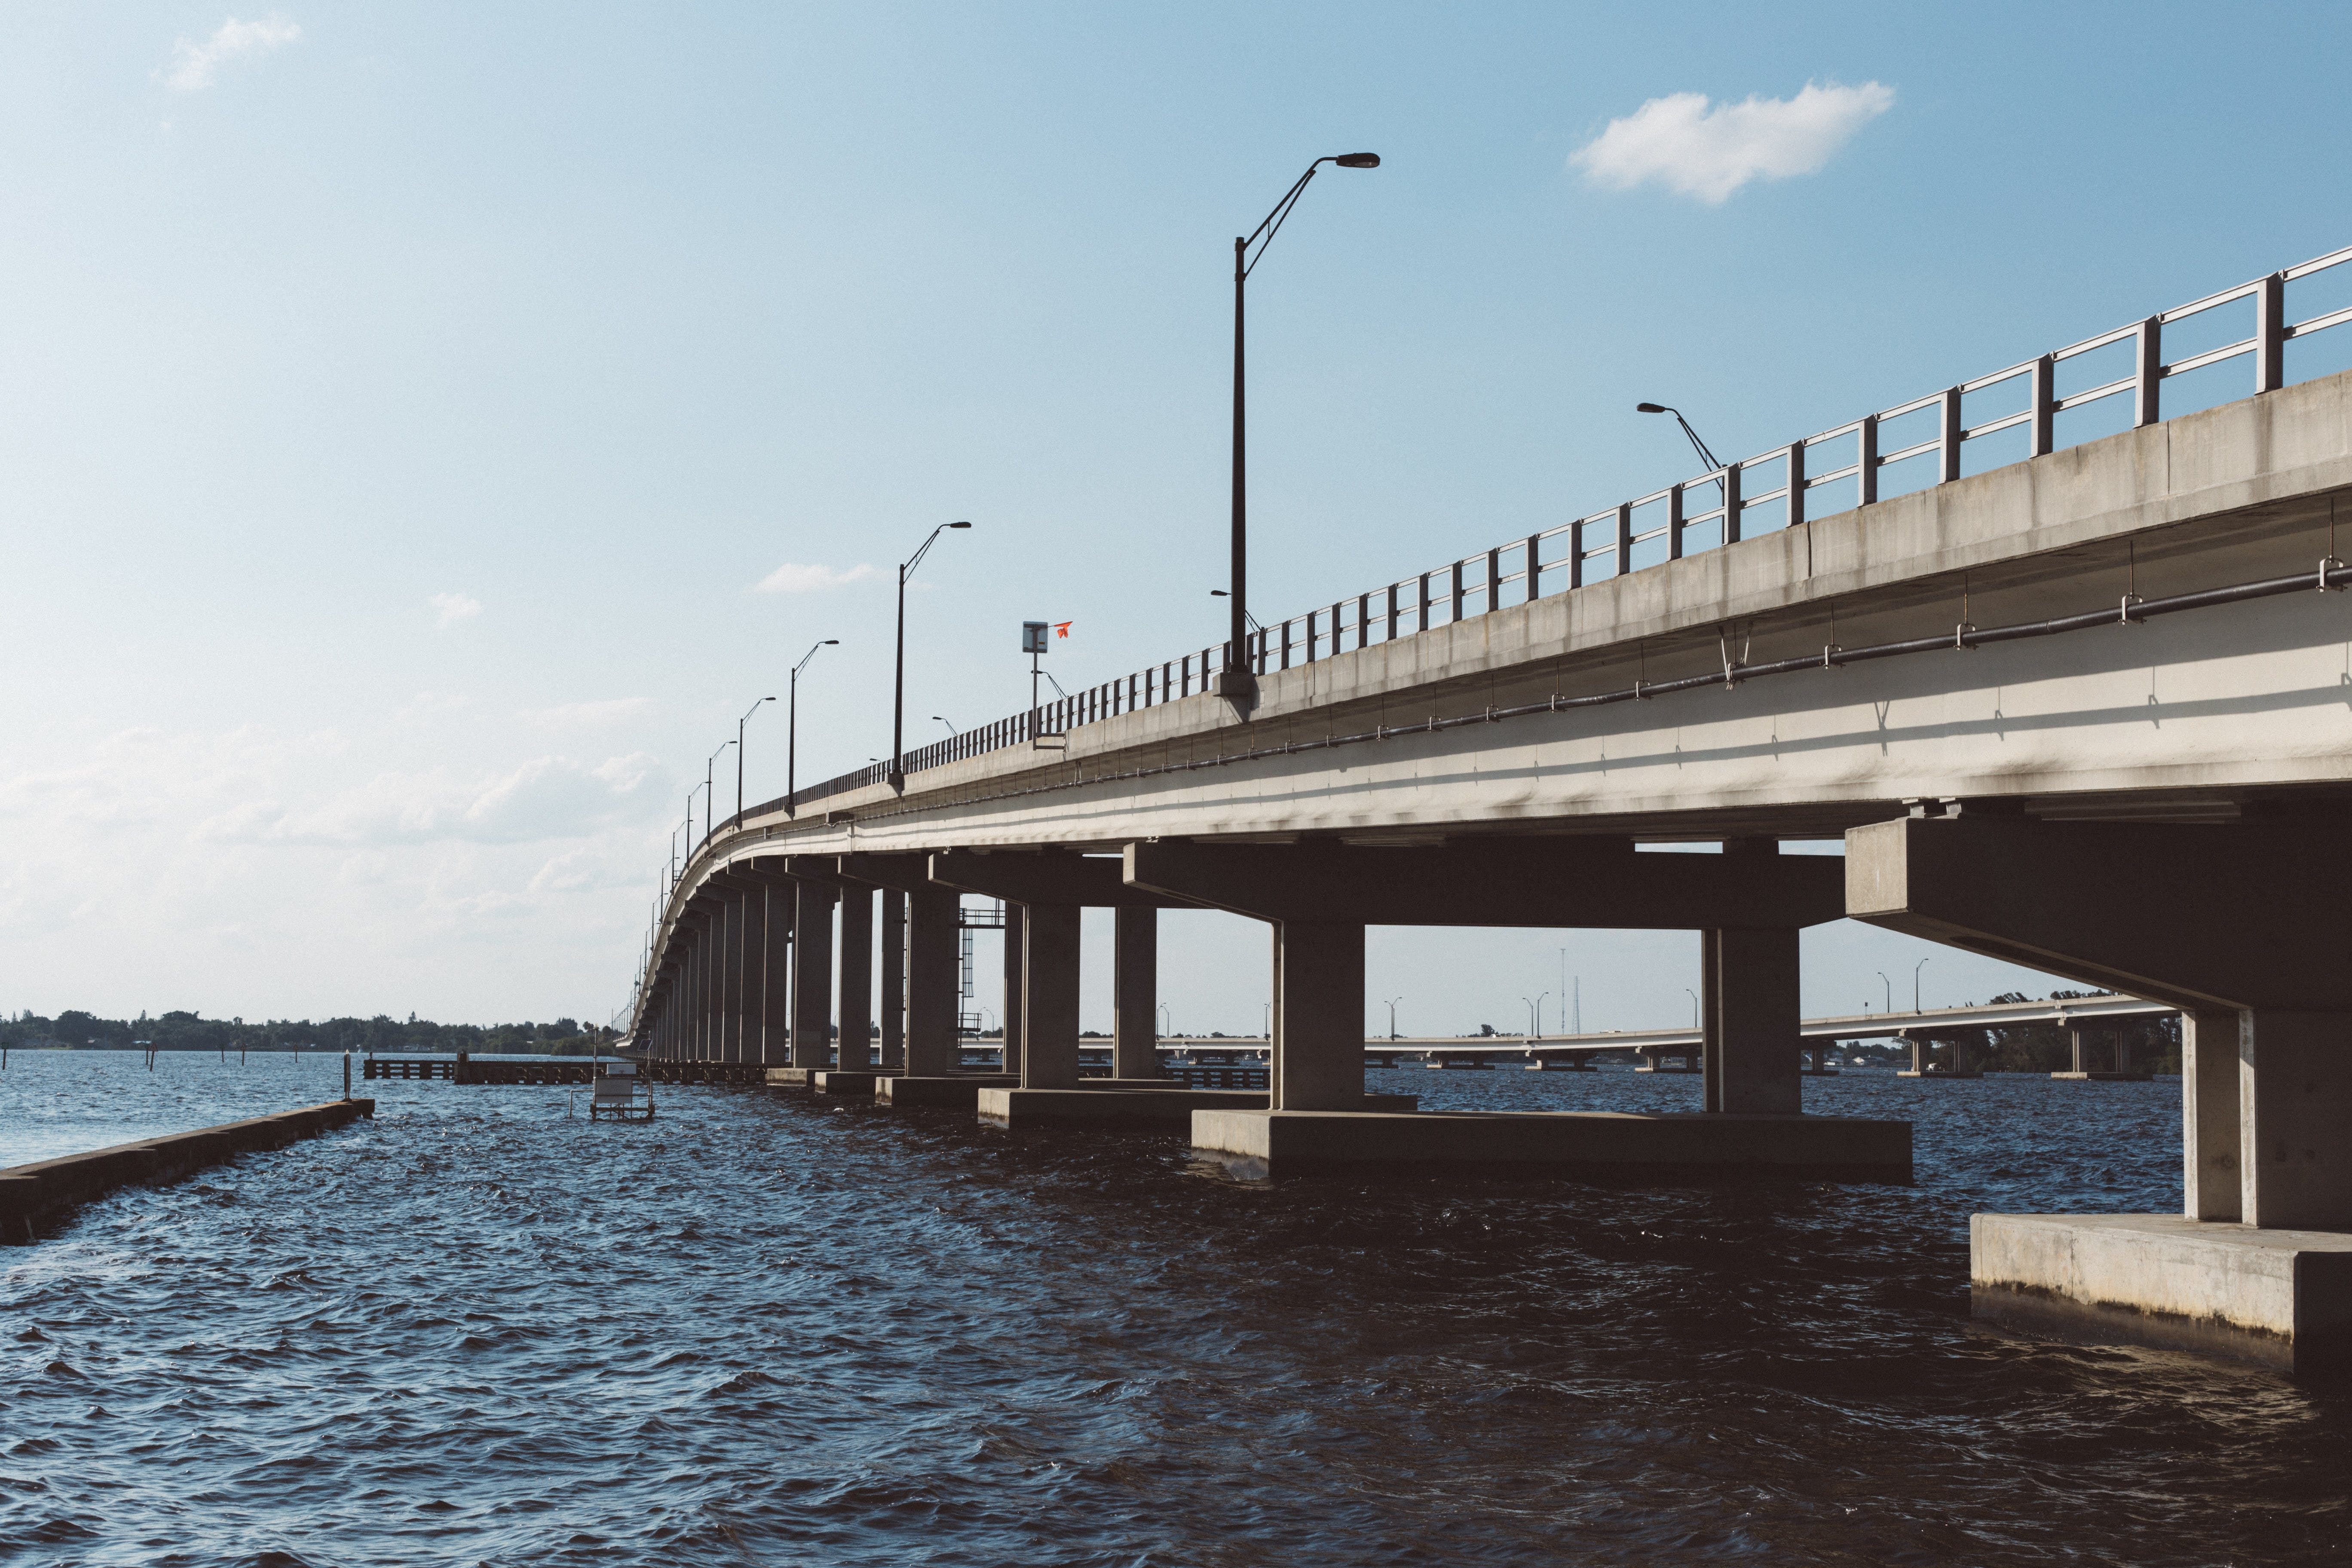 Brown Concrete Bridge Above Body of Water Under Blue Sky and White Clouds